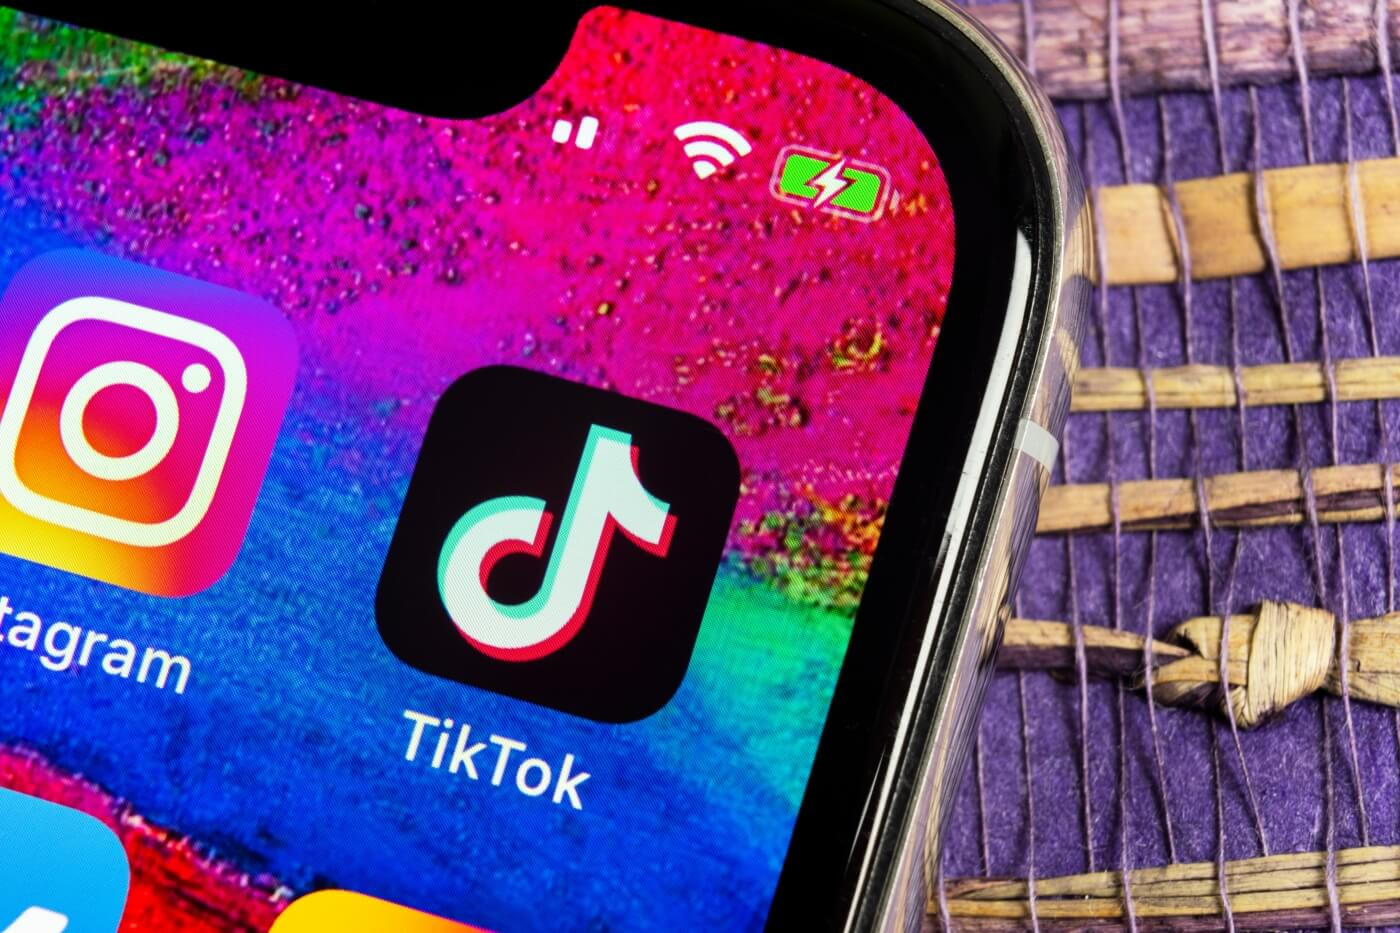 TikTok caught copying iOS users' clipboard contents, claims it's an anti-spam feature